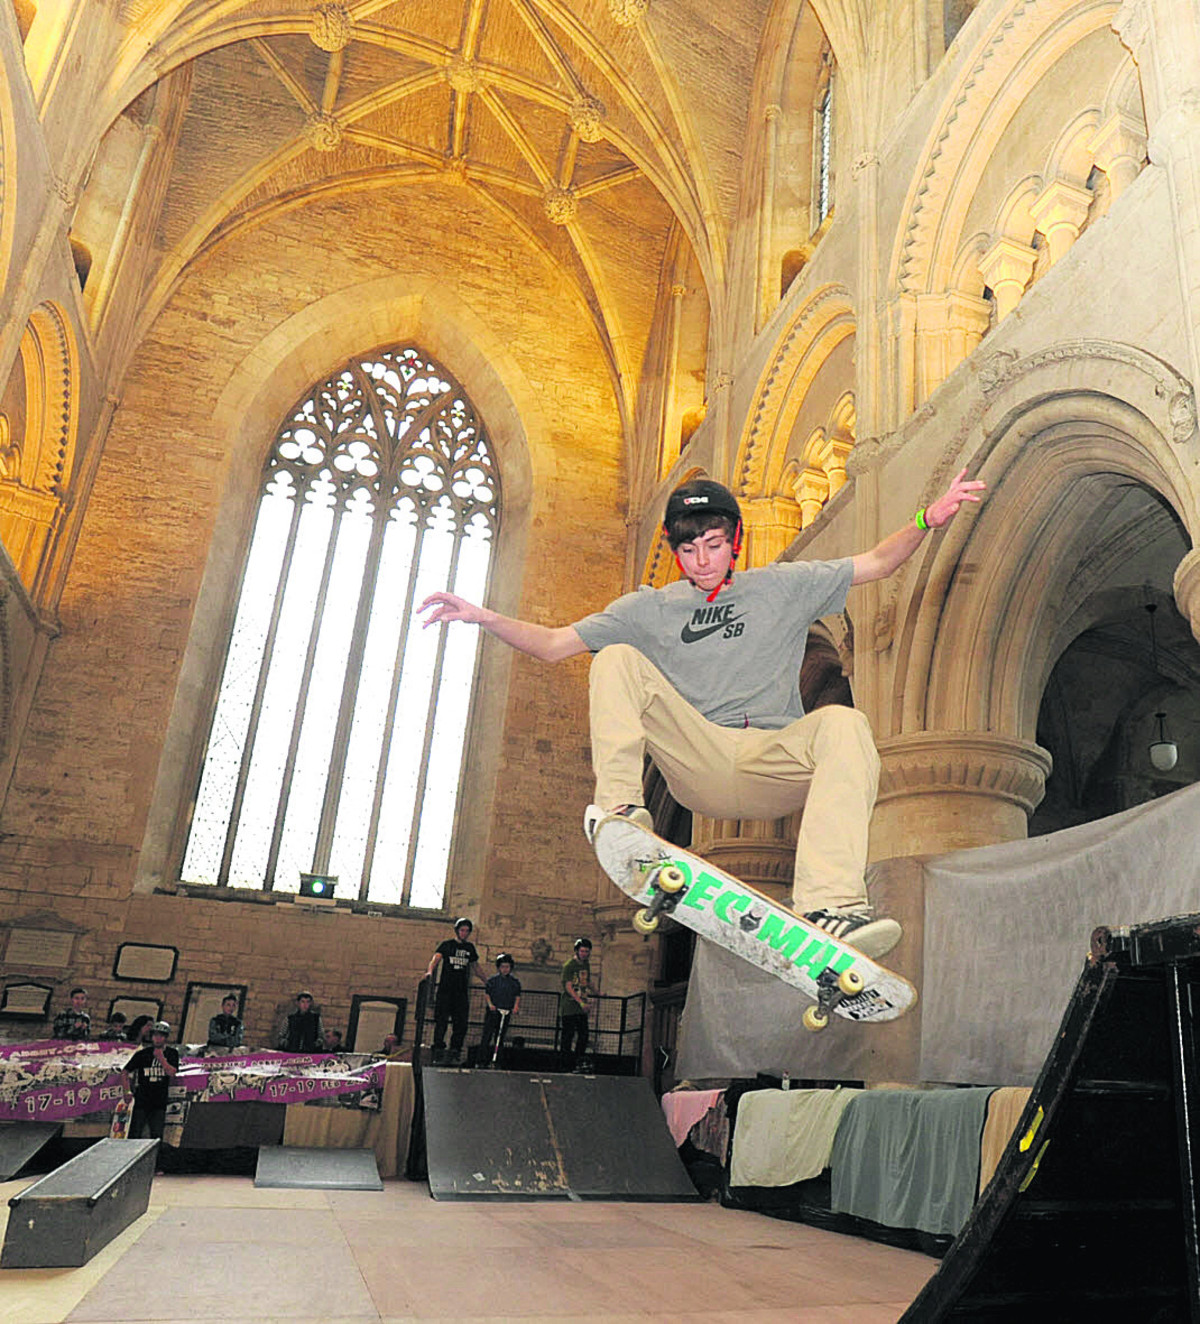 Jason Harwood at a previous Malmesbury Abbey skate park event